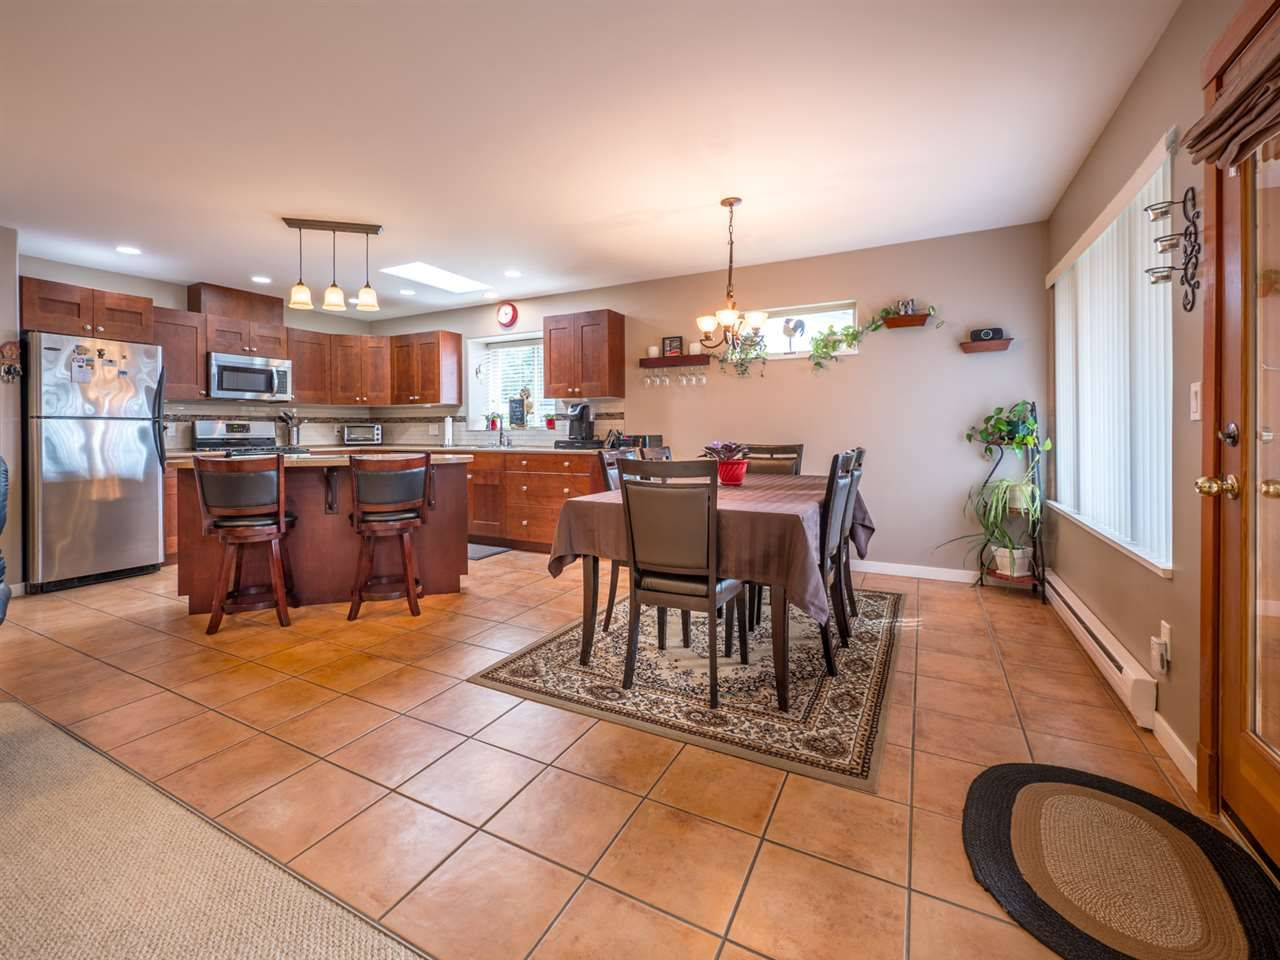 Photo 9: Photos: 6335 PICADILLY Place in Sechelt: Sechelt District House for sale (Sunshine Coast)  : MLS®# R2248834